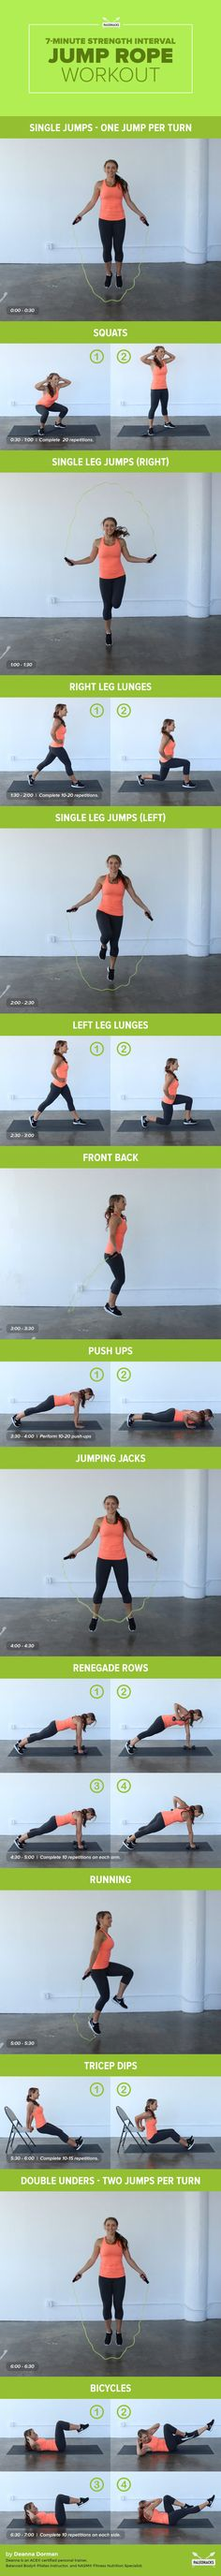 We're bringing you another twist on the 7-Minute Workout using the classic jump rope. Stash it in your gym bag or purse for an easy way to build strength and agility anywhere!  For this workout you will need a jump rope, a set of dumbbells and a chair or bench. Move as quickly as possible from one exercise to the next with NO rest — it'll all be over in just seven minutes! For the full workout, visit us at: http://paleo.co/jumpropeWO